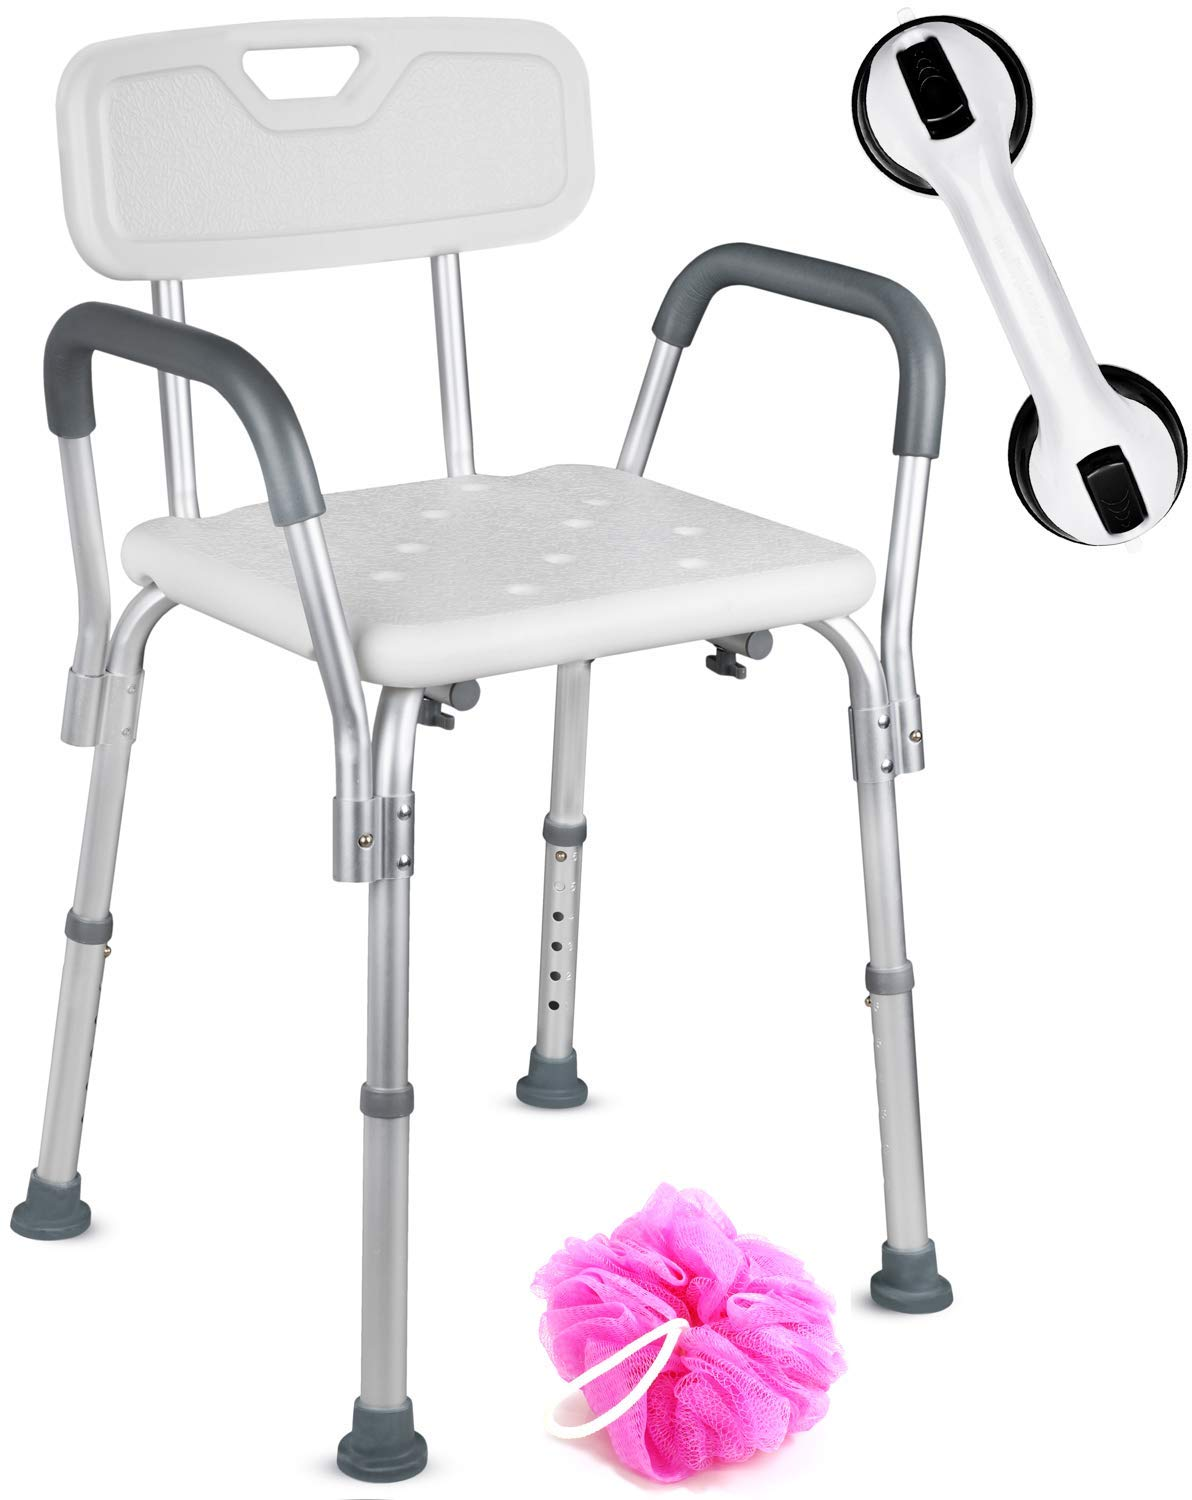 Dr. Maya Adjustable Shower Chair with Back and Arms - Free Suction Assist Grab Bar - Anti-Slip Bench - Bathtub Seat for Bathroom Safety